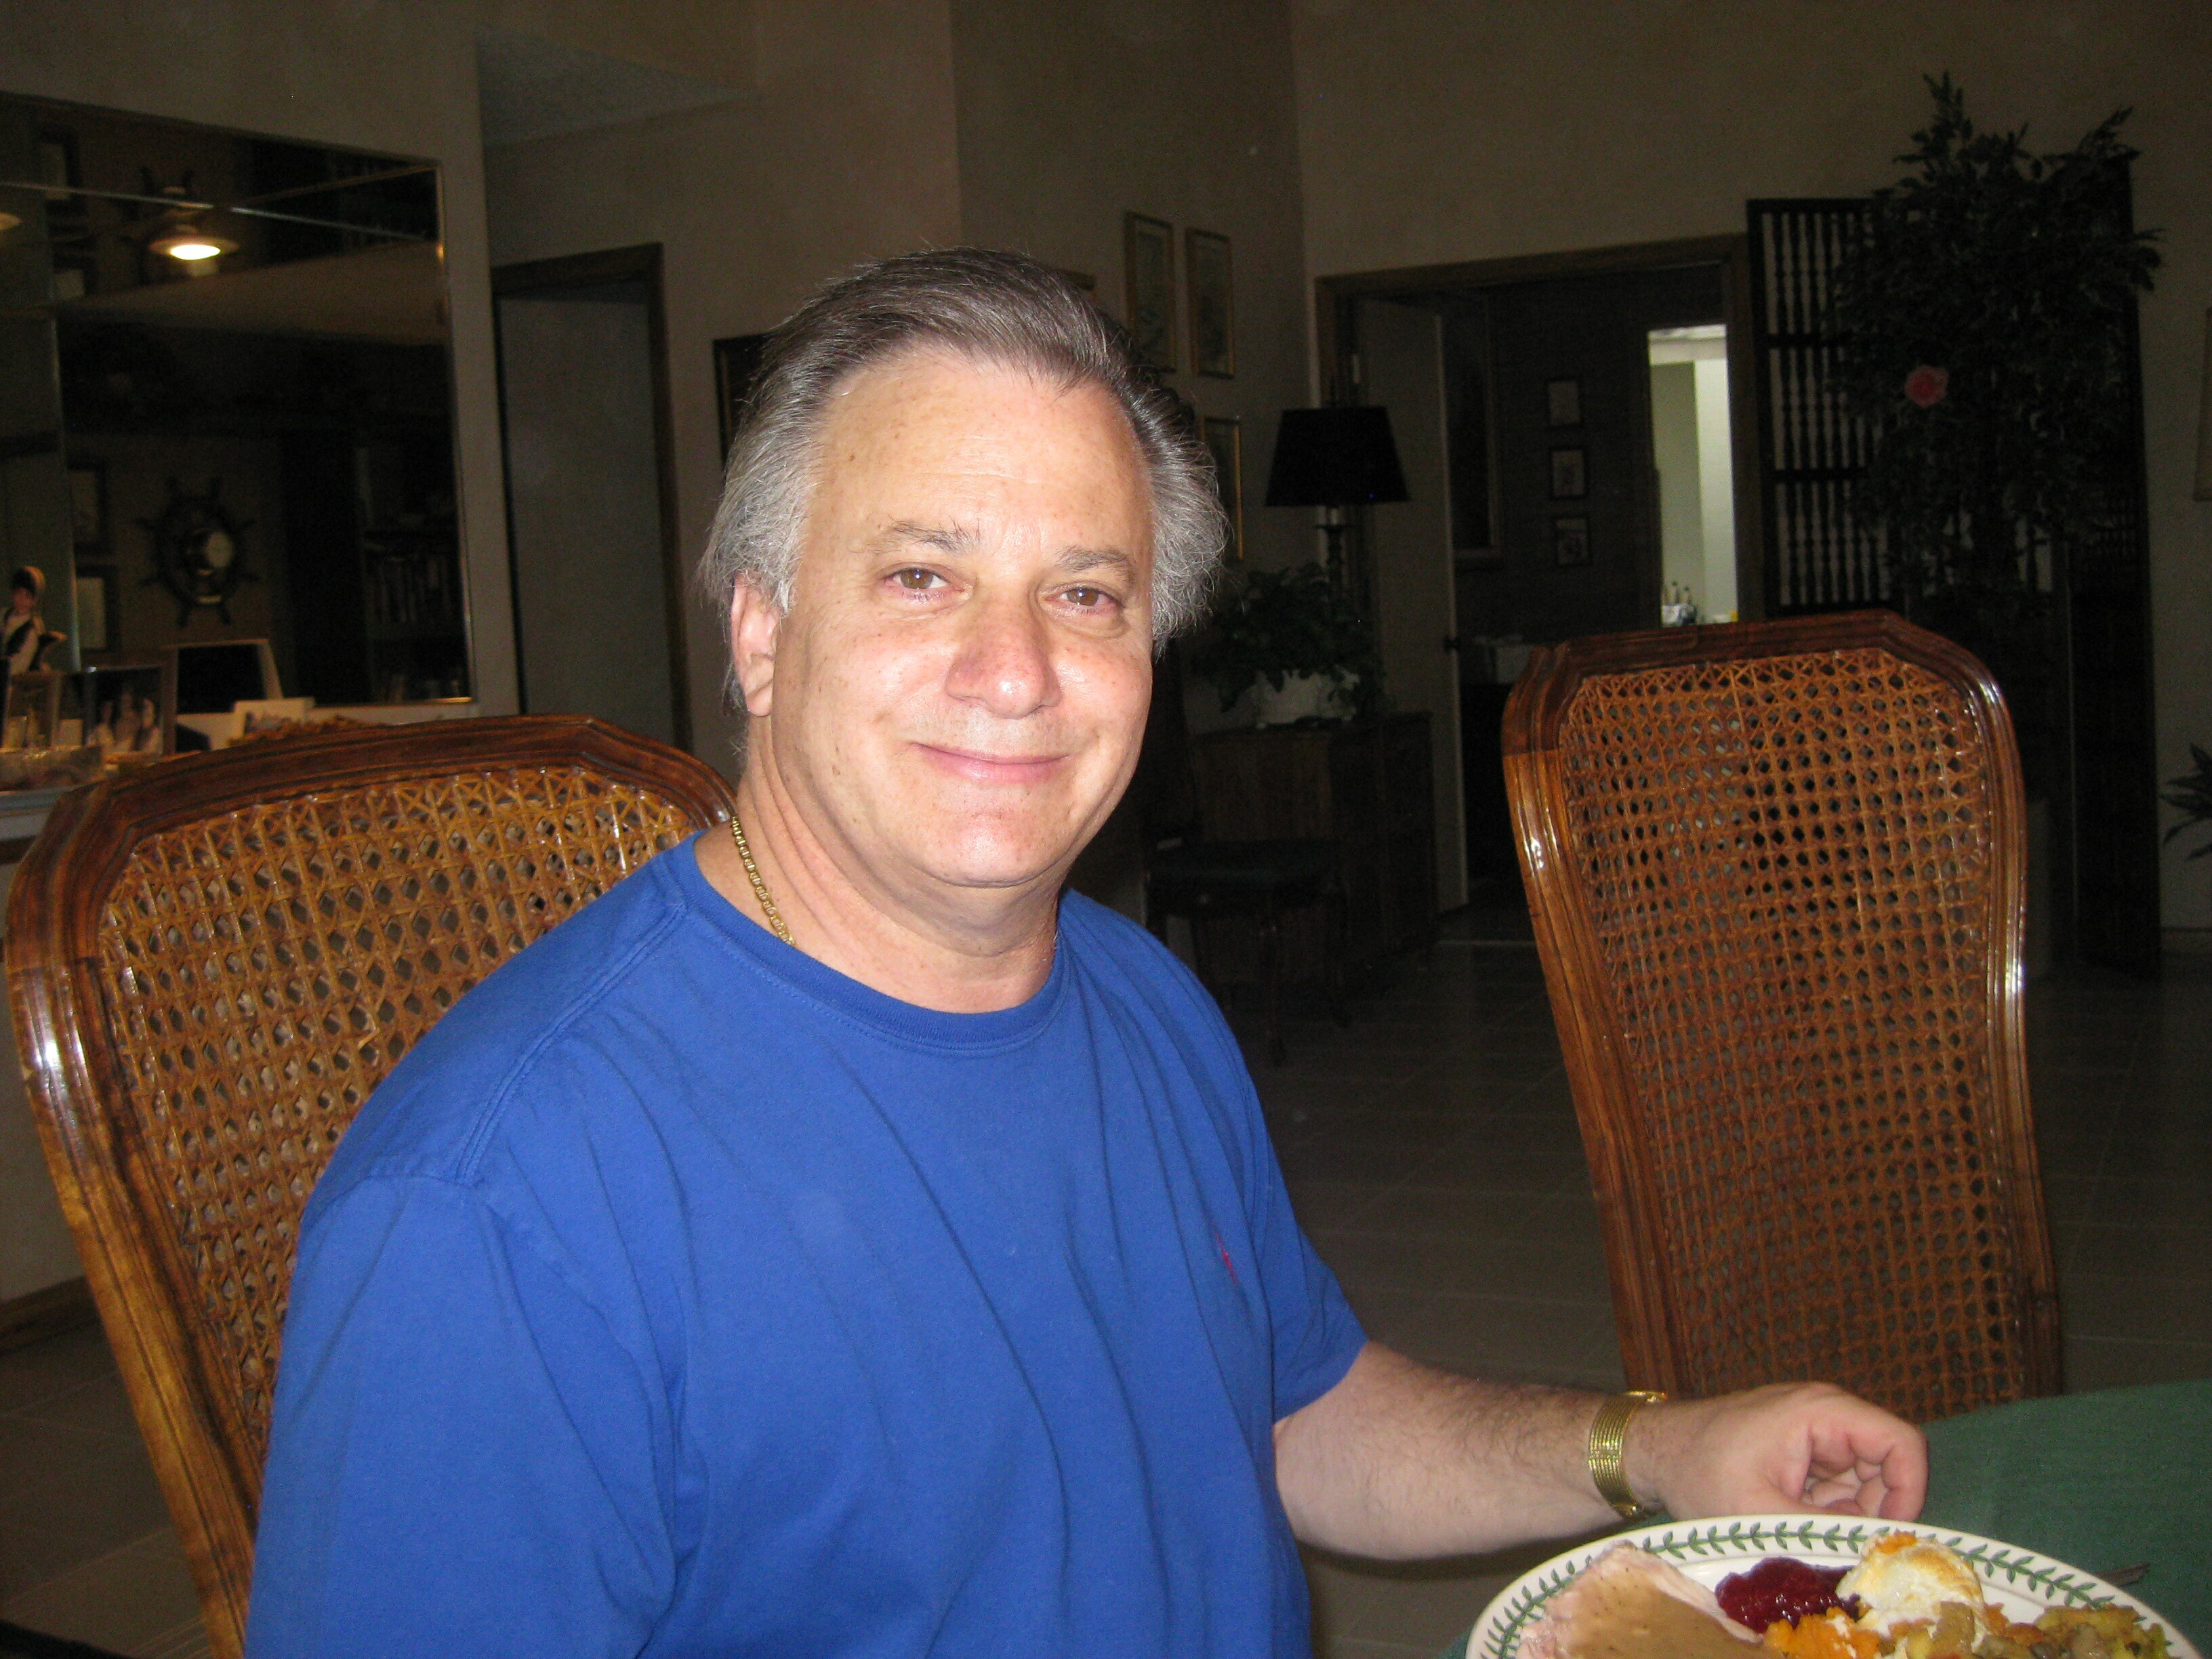 Jeff Wolfson at Thanksgiving, 2010